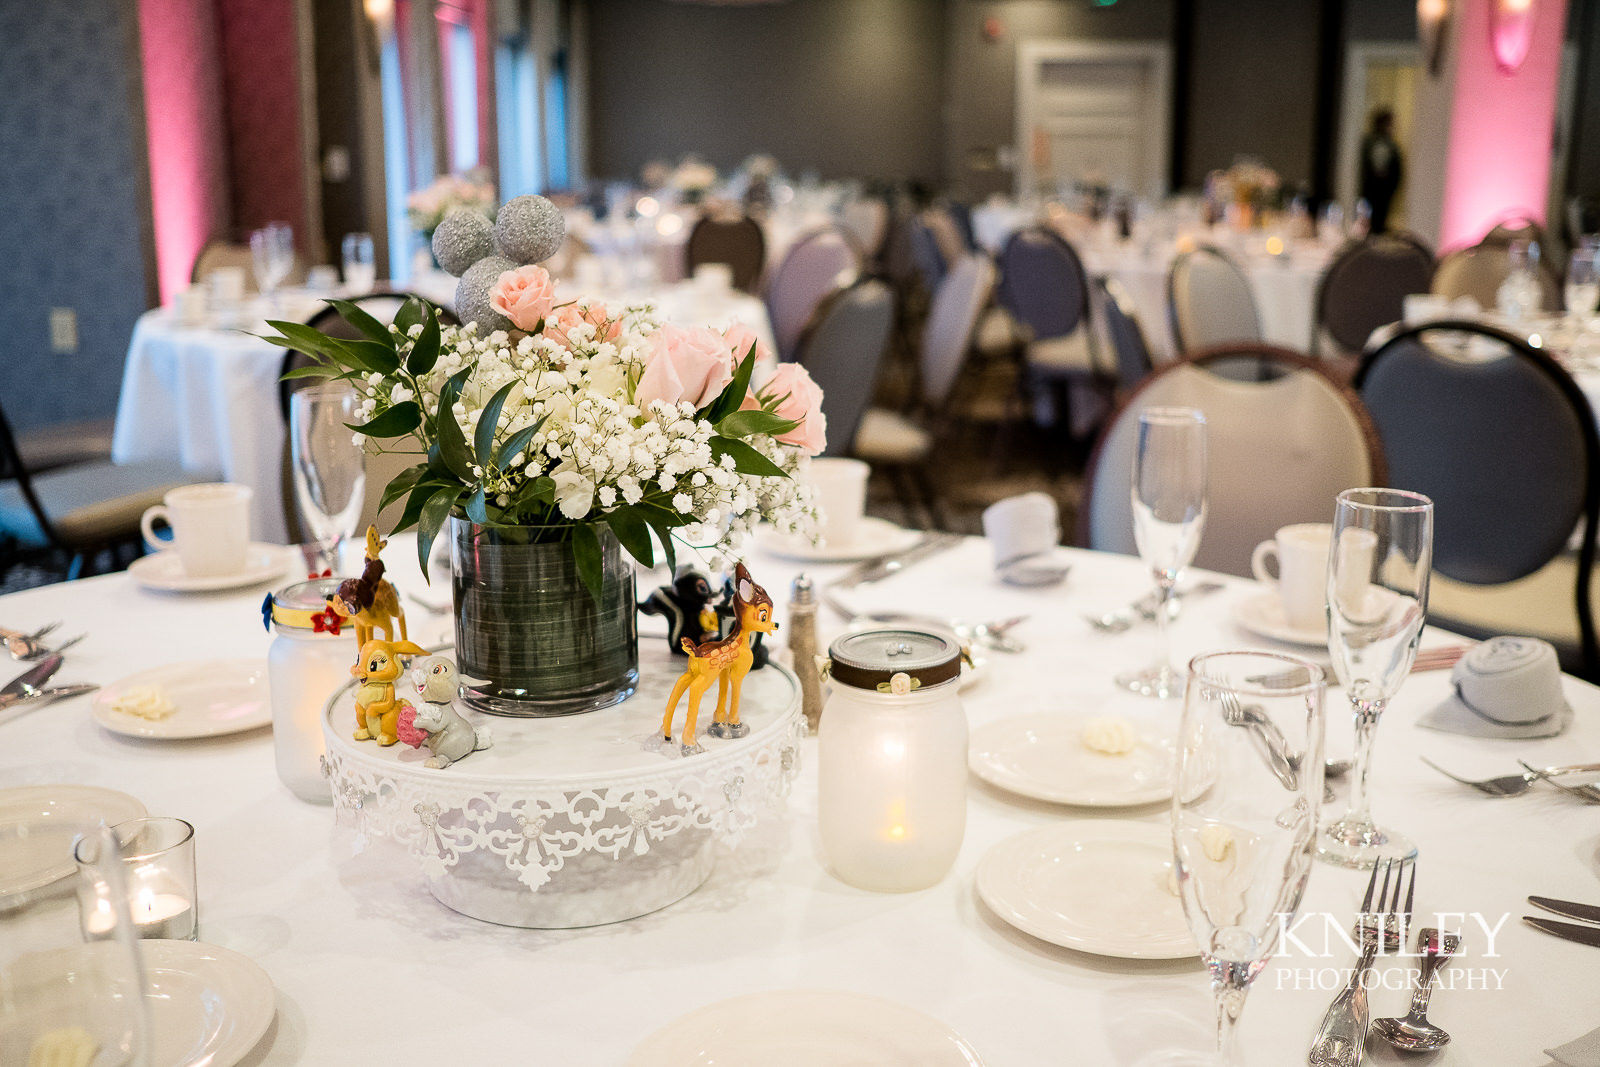 066 - Woodcliff Hotel - Rochester NY wedding photo - Kniley Photography.jpg